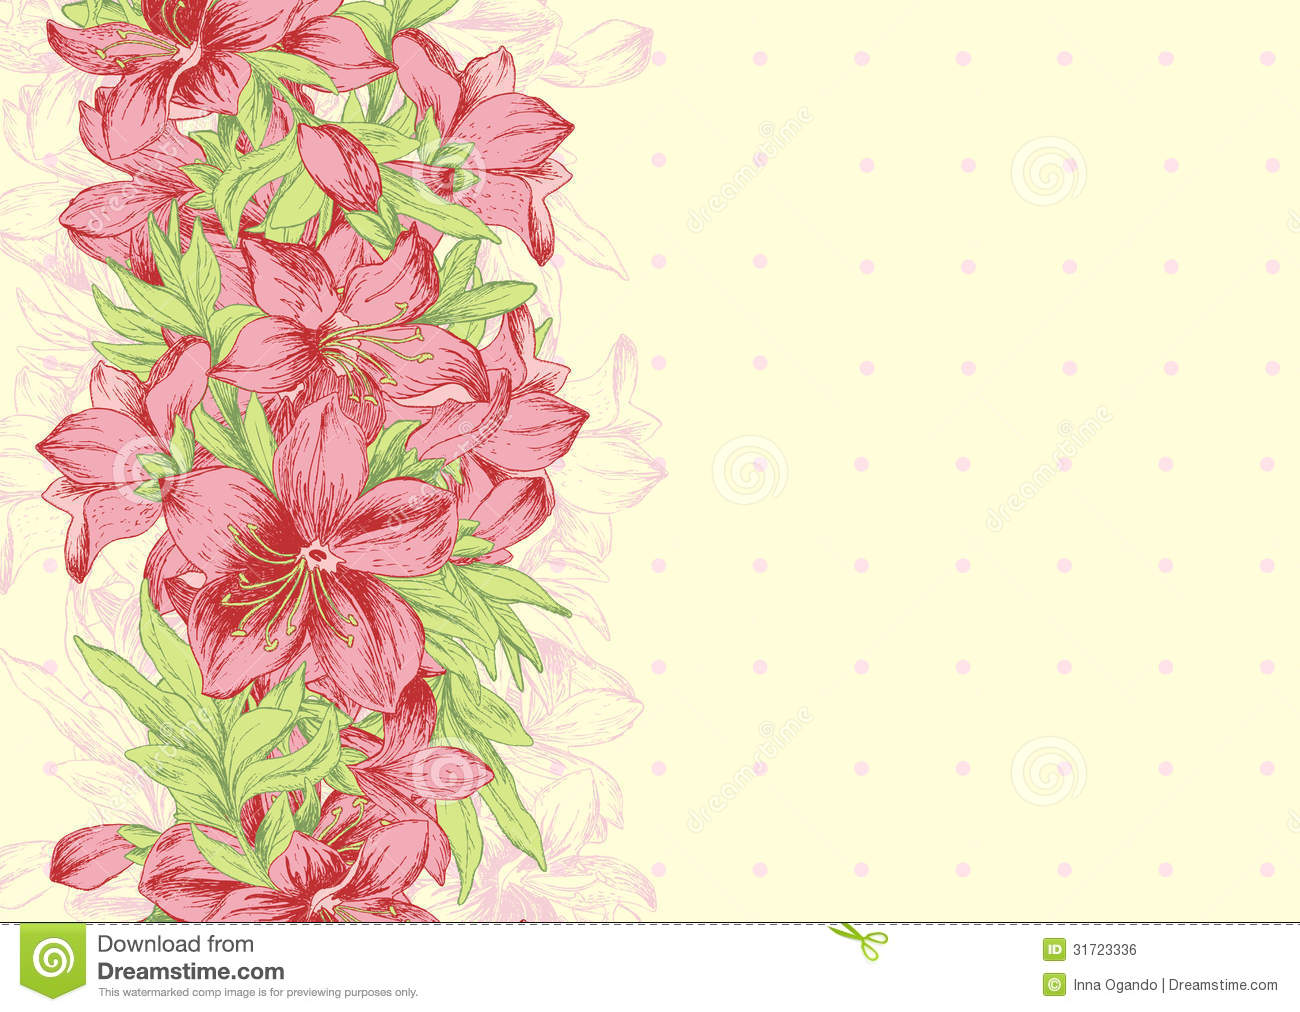 Floral background template stock vector. Image of artwork - 31723336